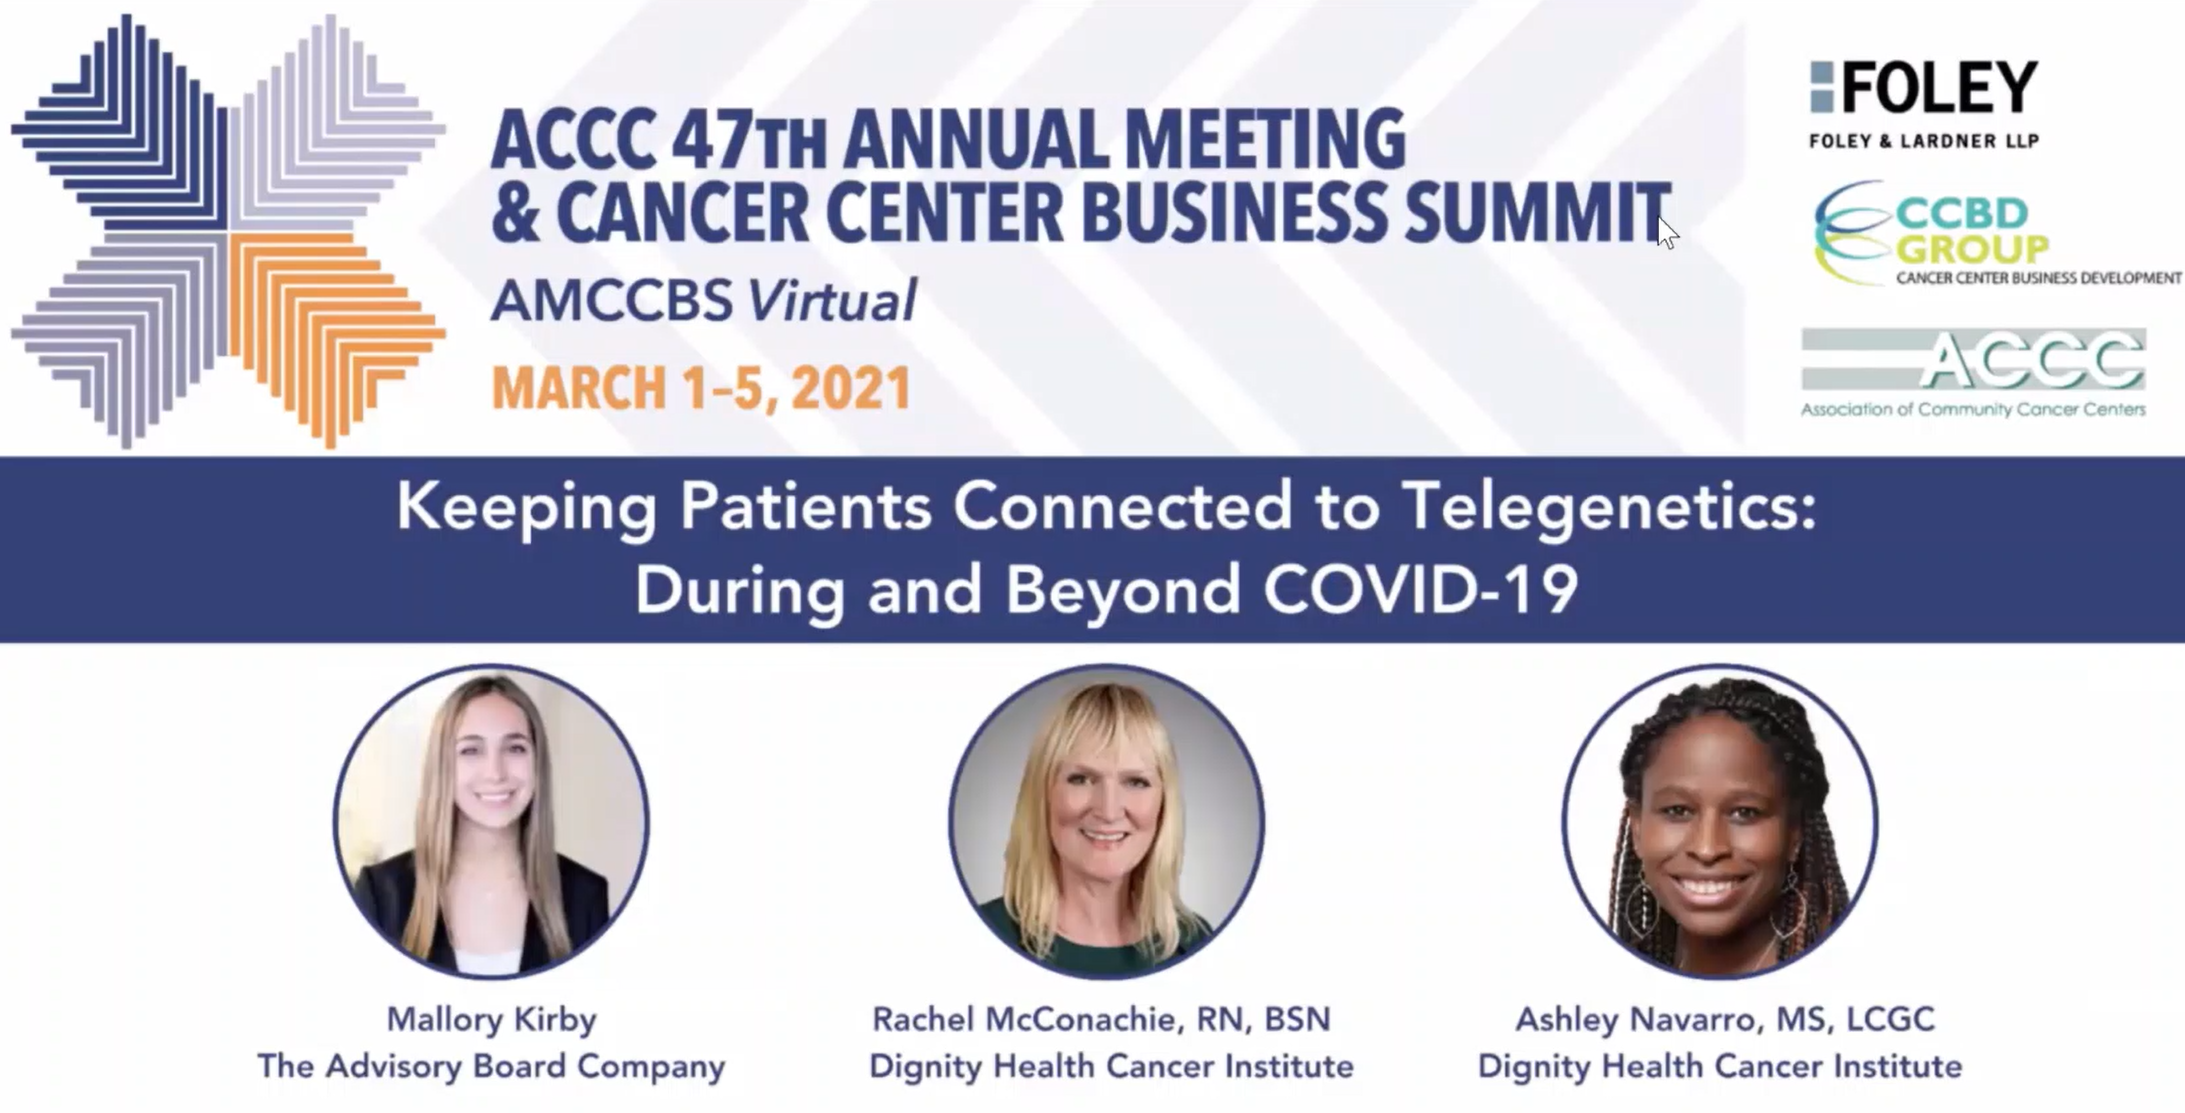 The Future of Cancer Care is Virtual: Top 5 Takeaways  From AMCCBS '21